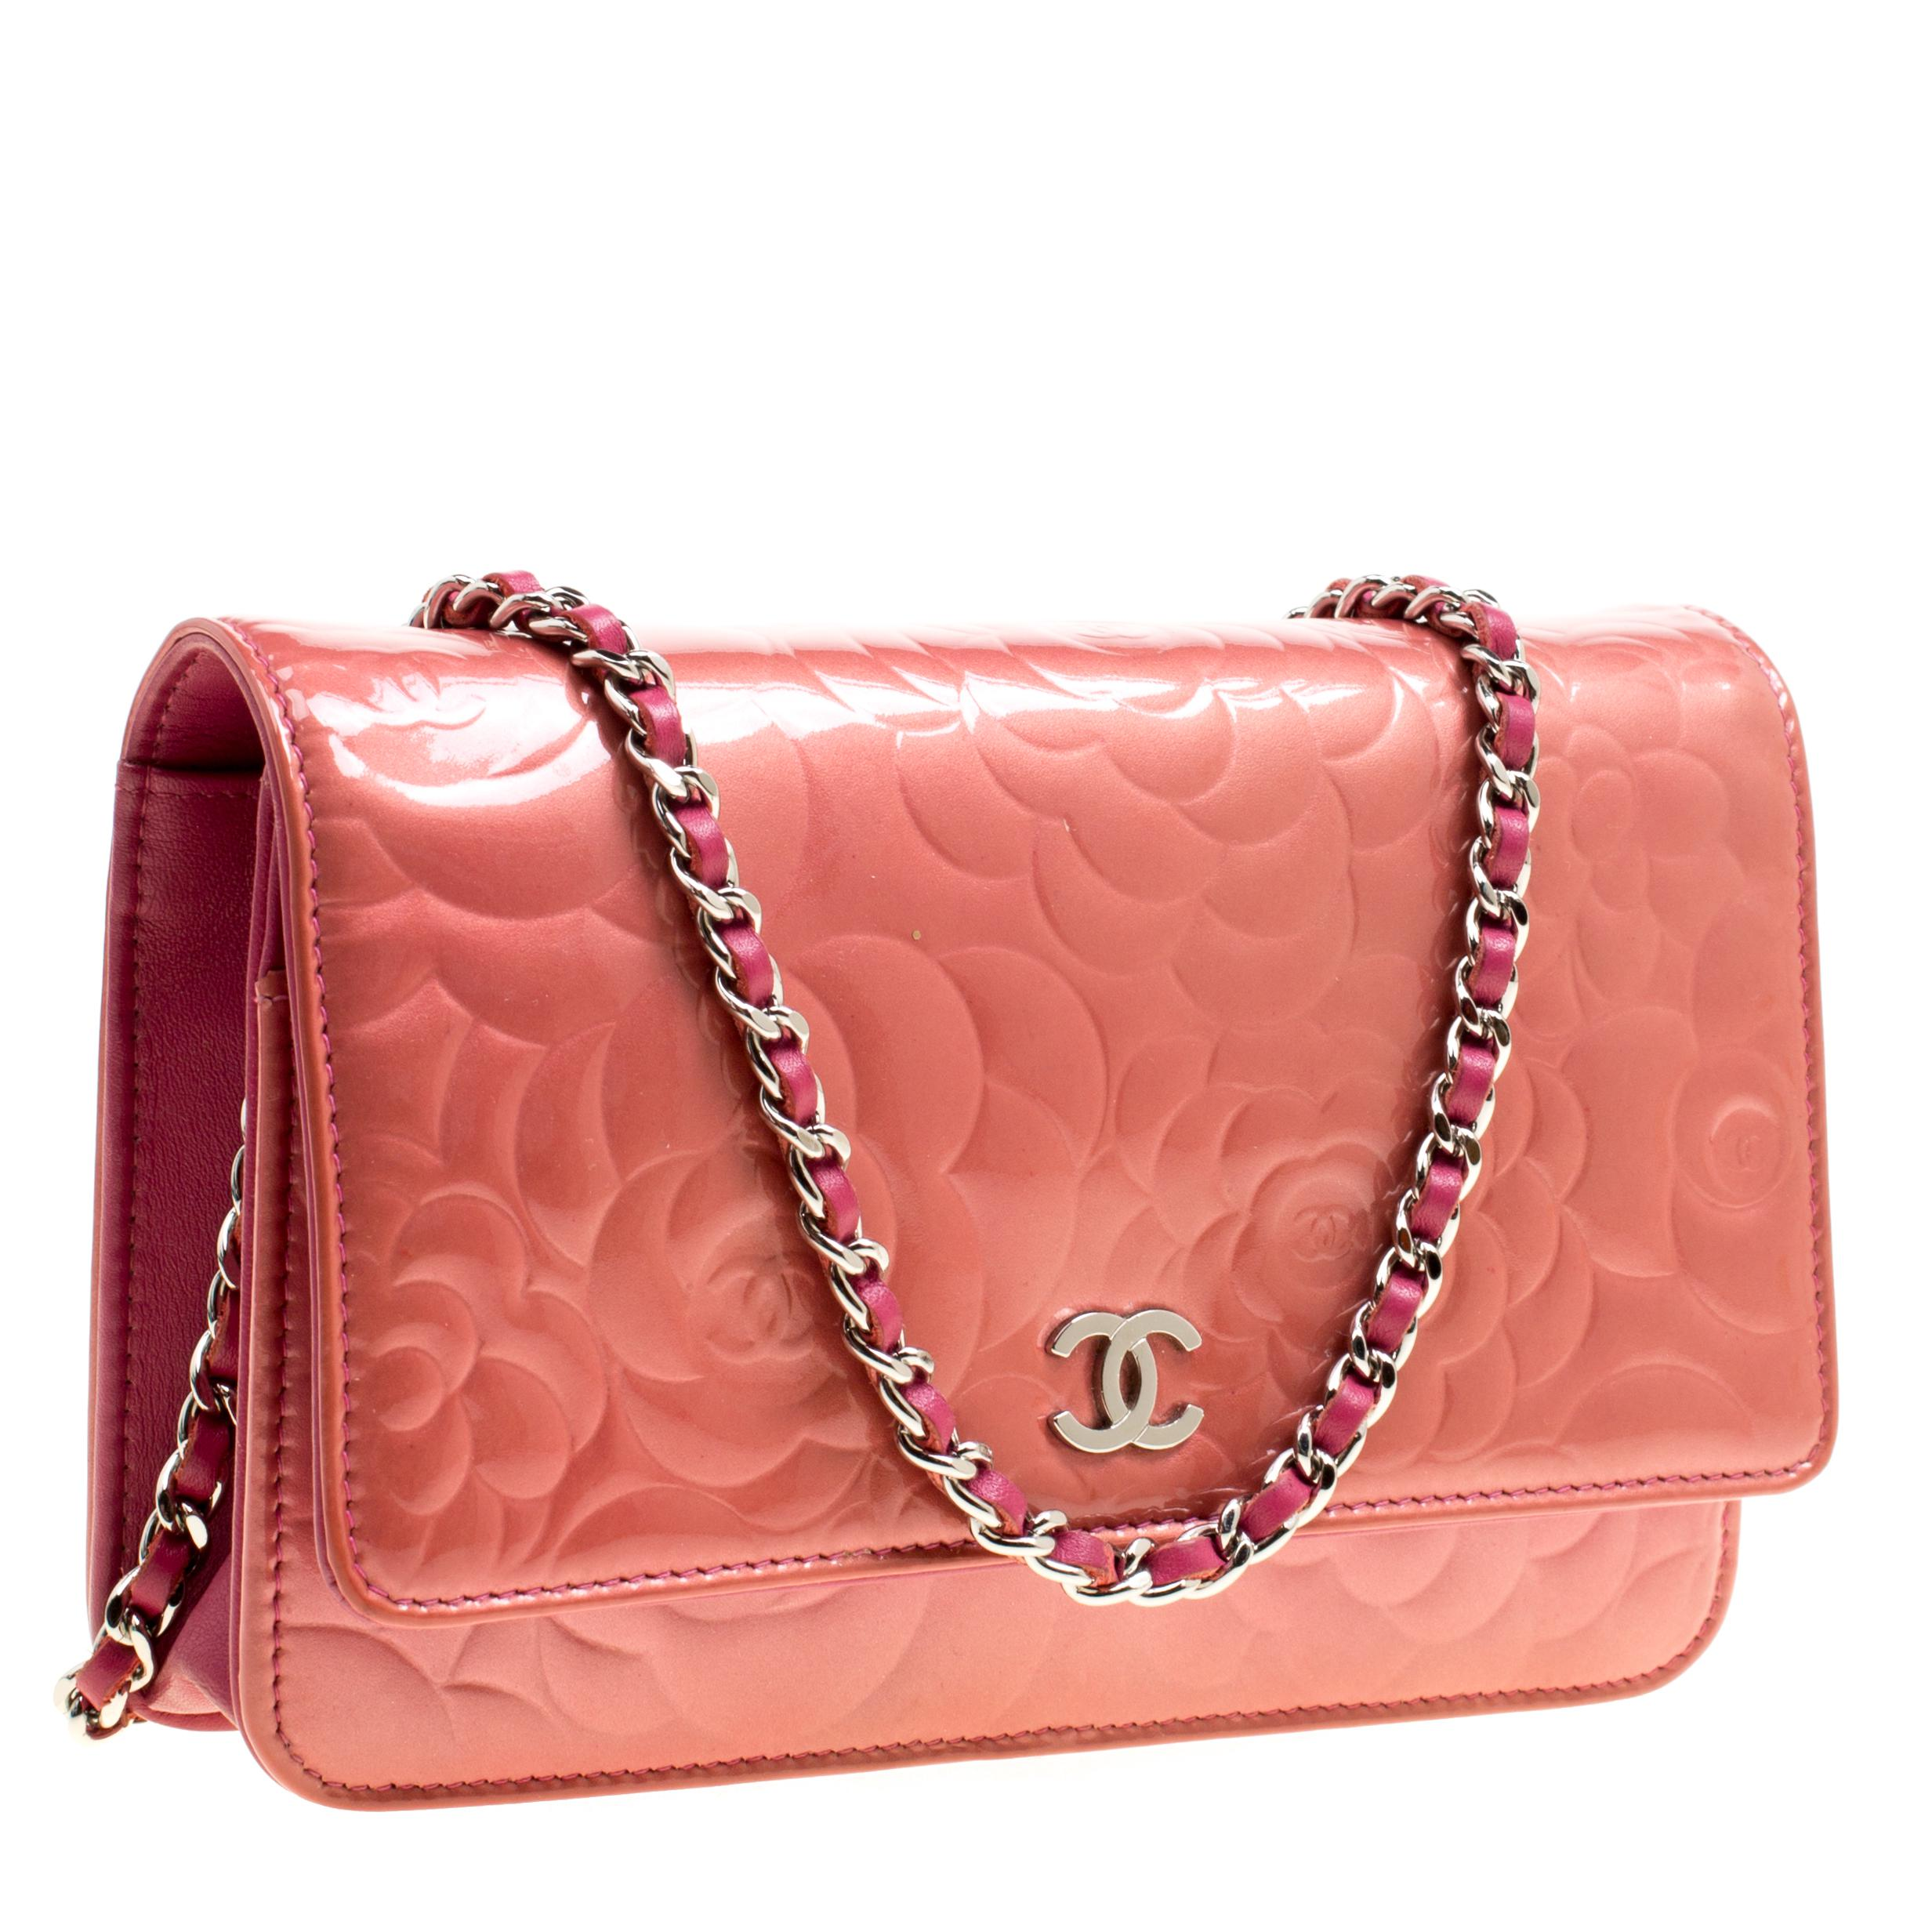 a2d4a74fb16 Chanel Rose Patent Leather Camellia Wallet On Chain in Pink - Lyst